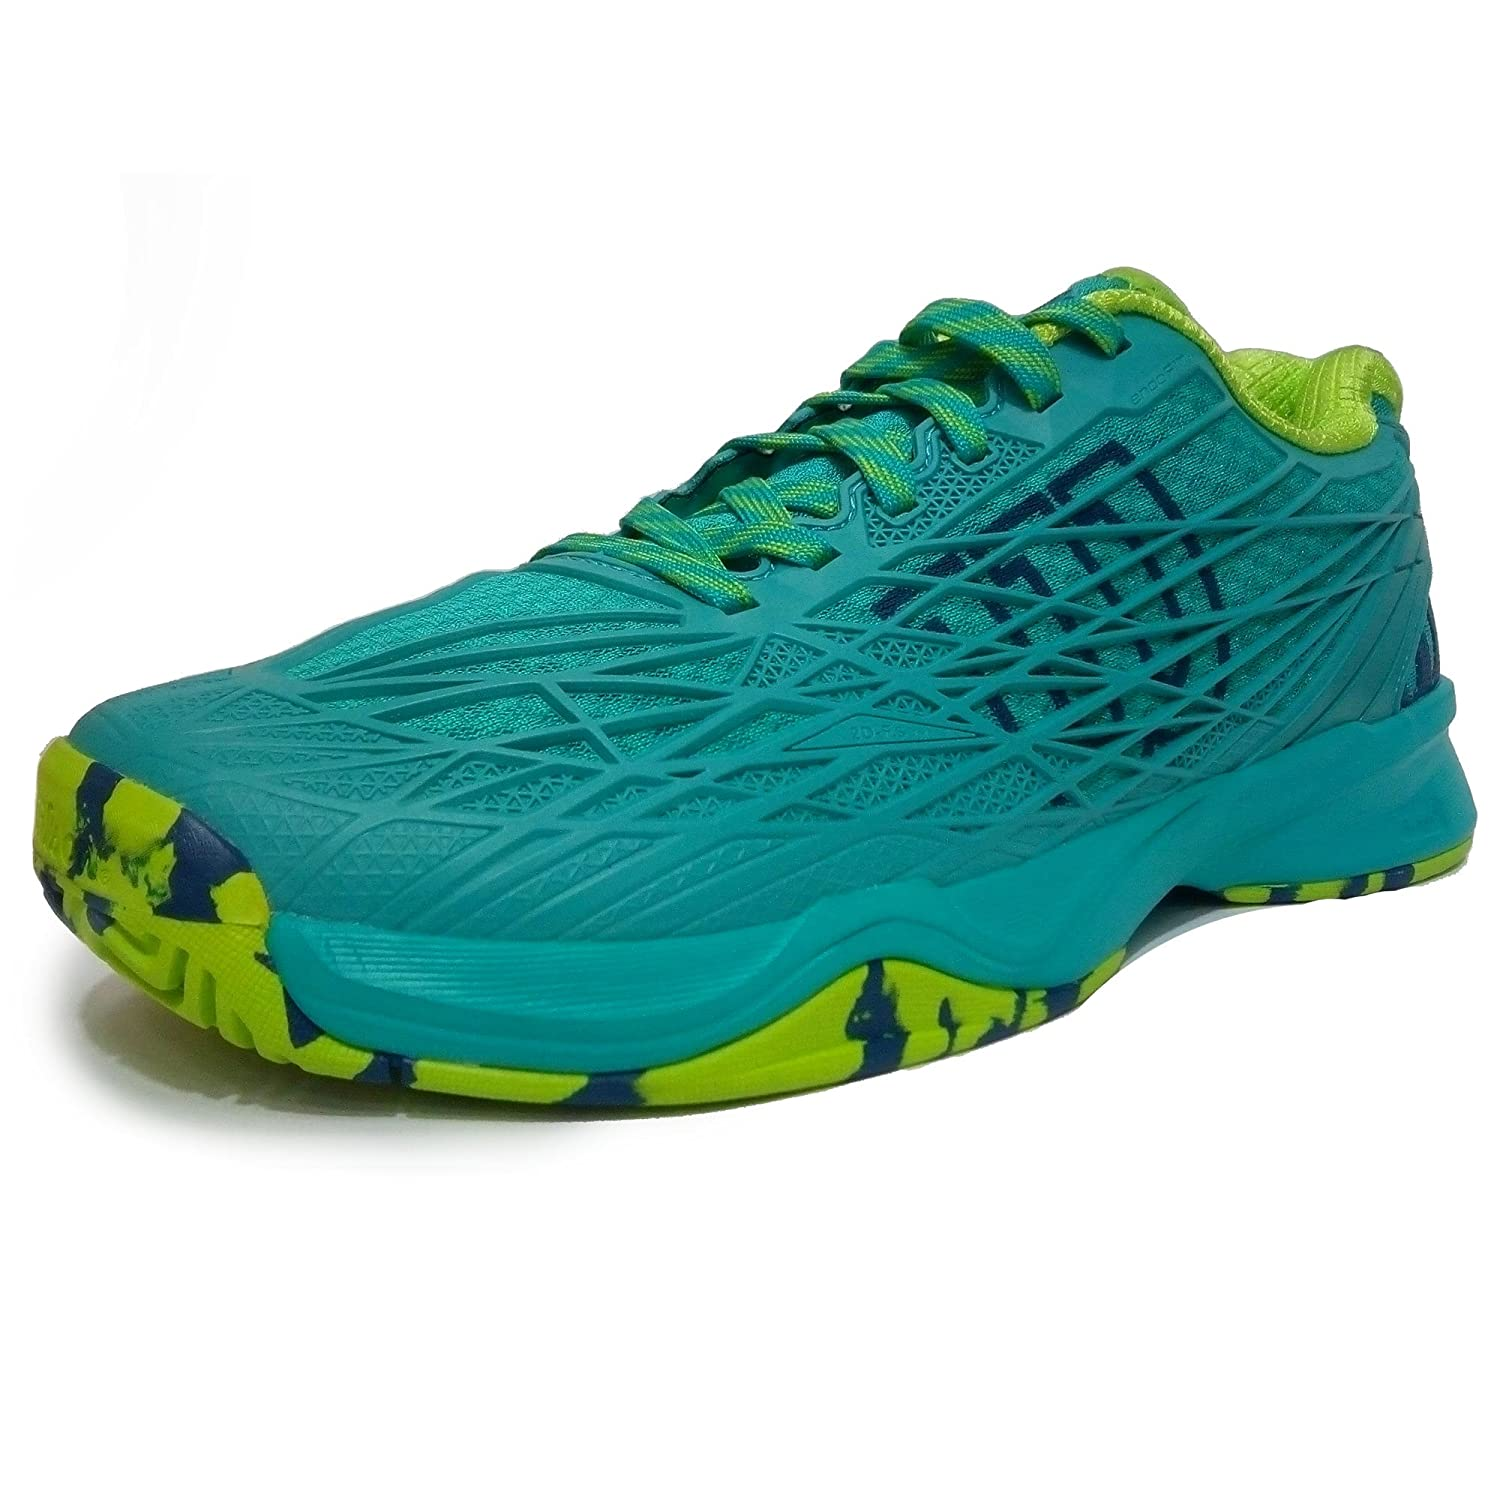 ZAPATILLAS WILSON KAOS WOMAN AZUL VERDE: Amazon.es: Deportes ...